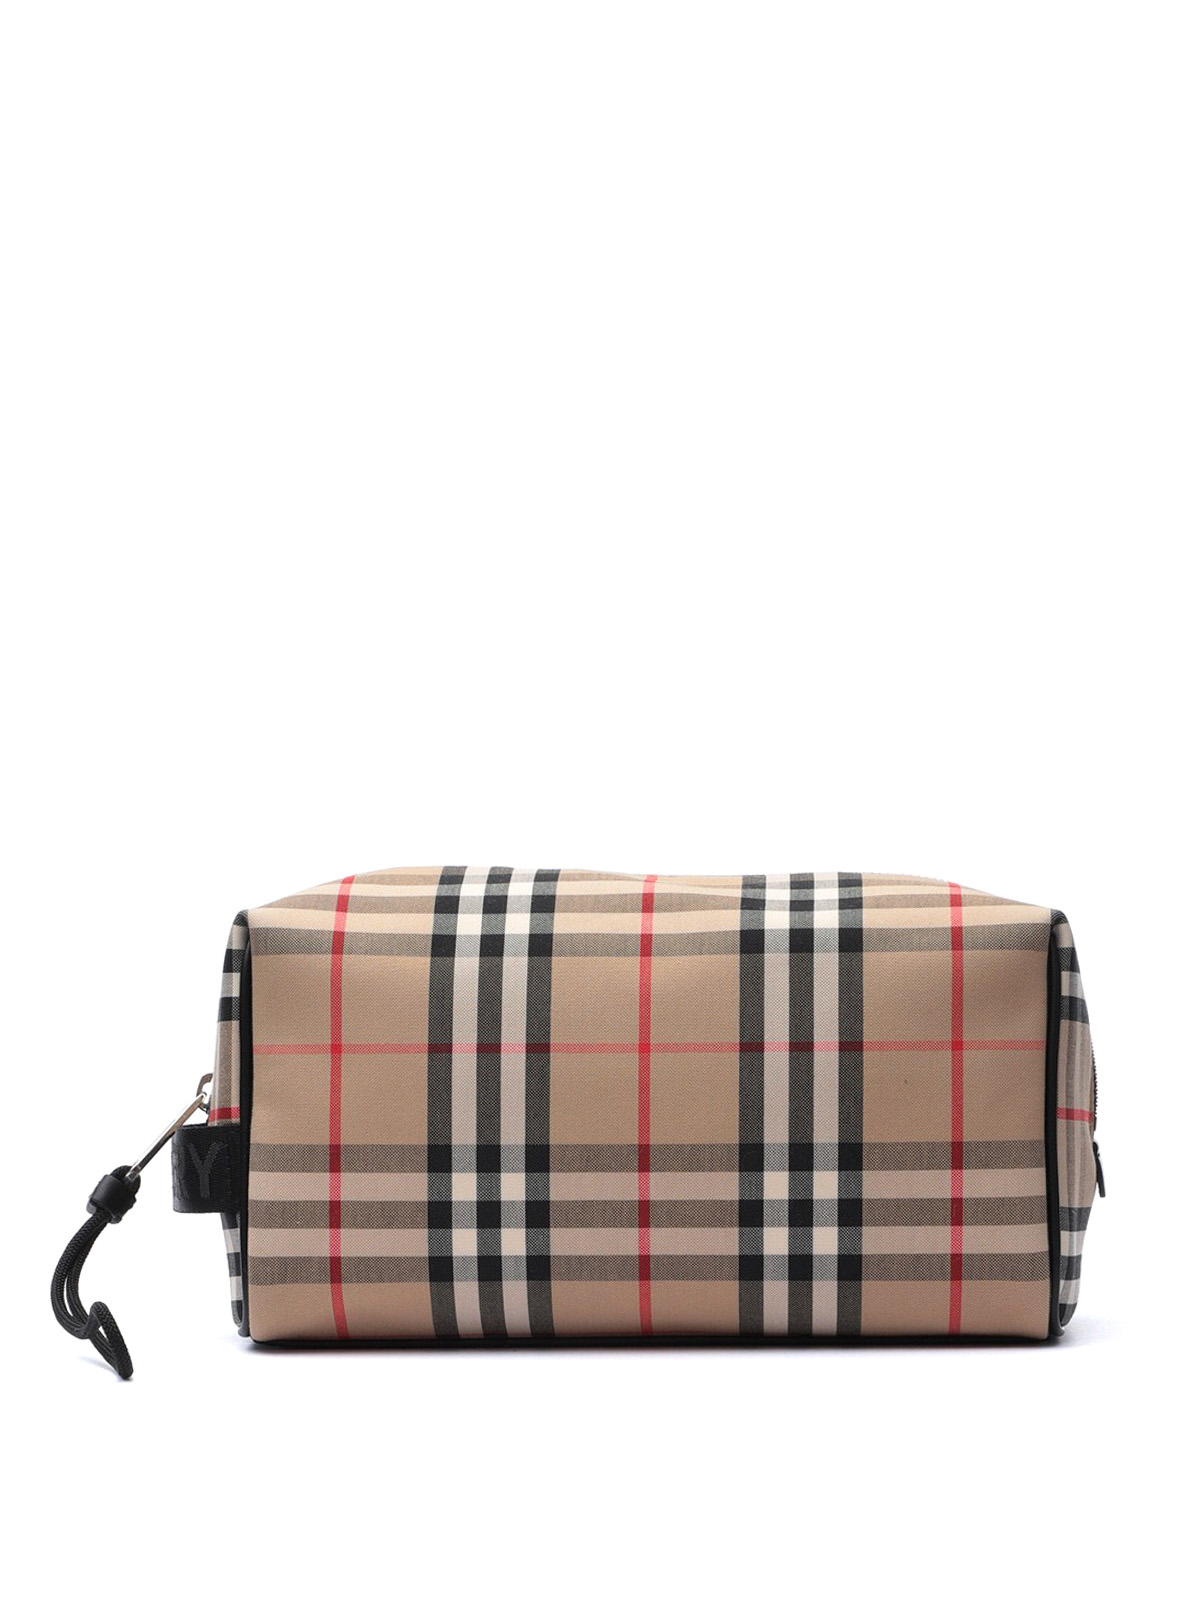 Burberry Vintage Check Beauty Case In Beige